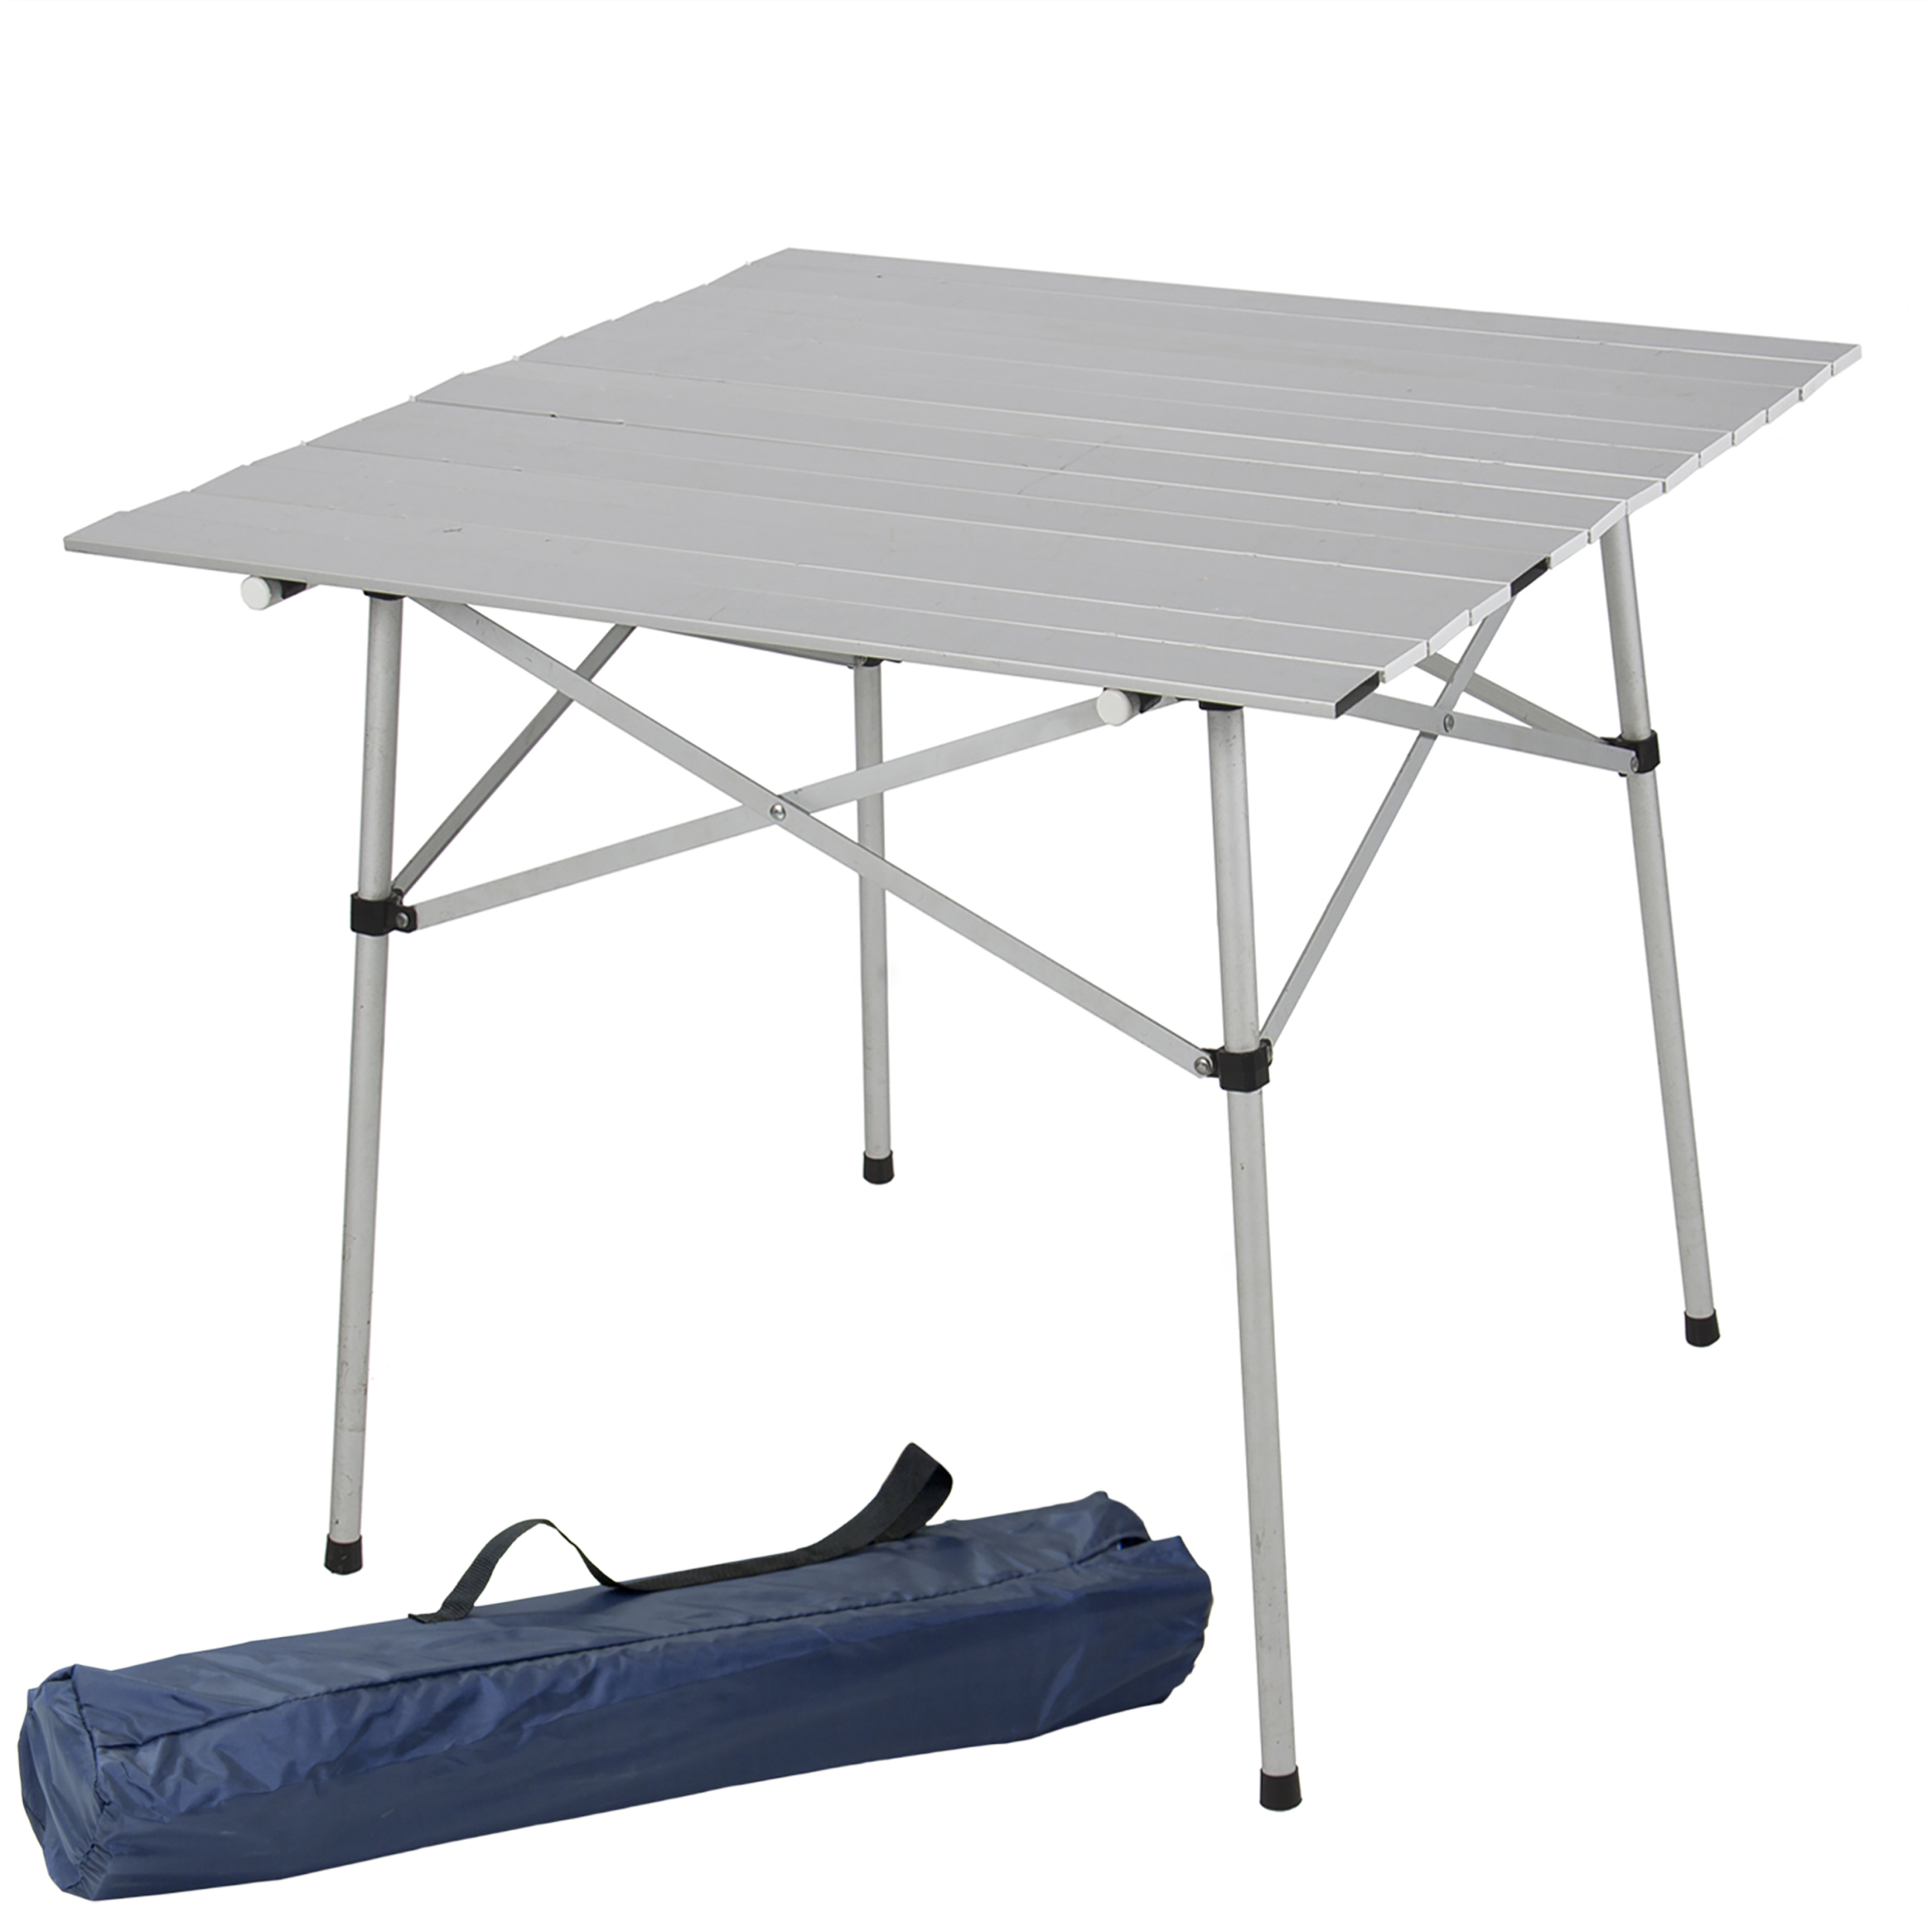 Best choice products aluminum roll up table folding camping outdoor best choice products aluminum roll up table folding camping outdoor indoor picnic table heavy duty walmart watchthetrailerfo